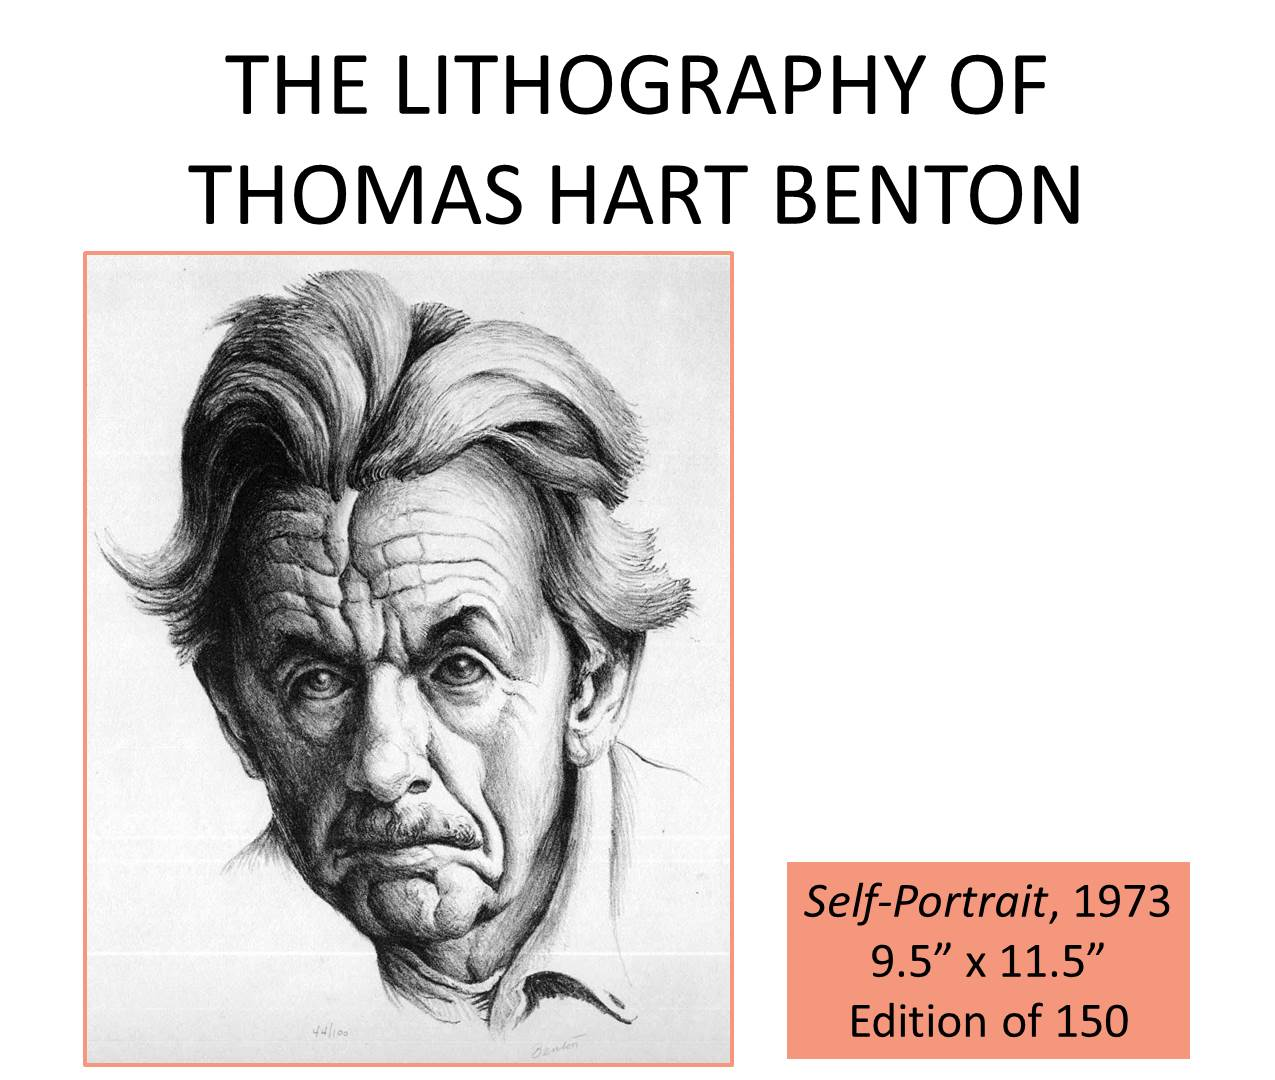 self portrait of Benton